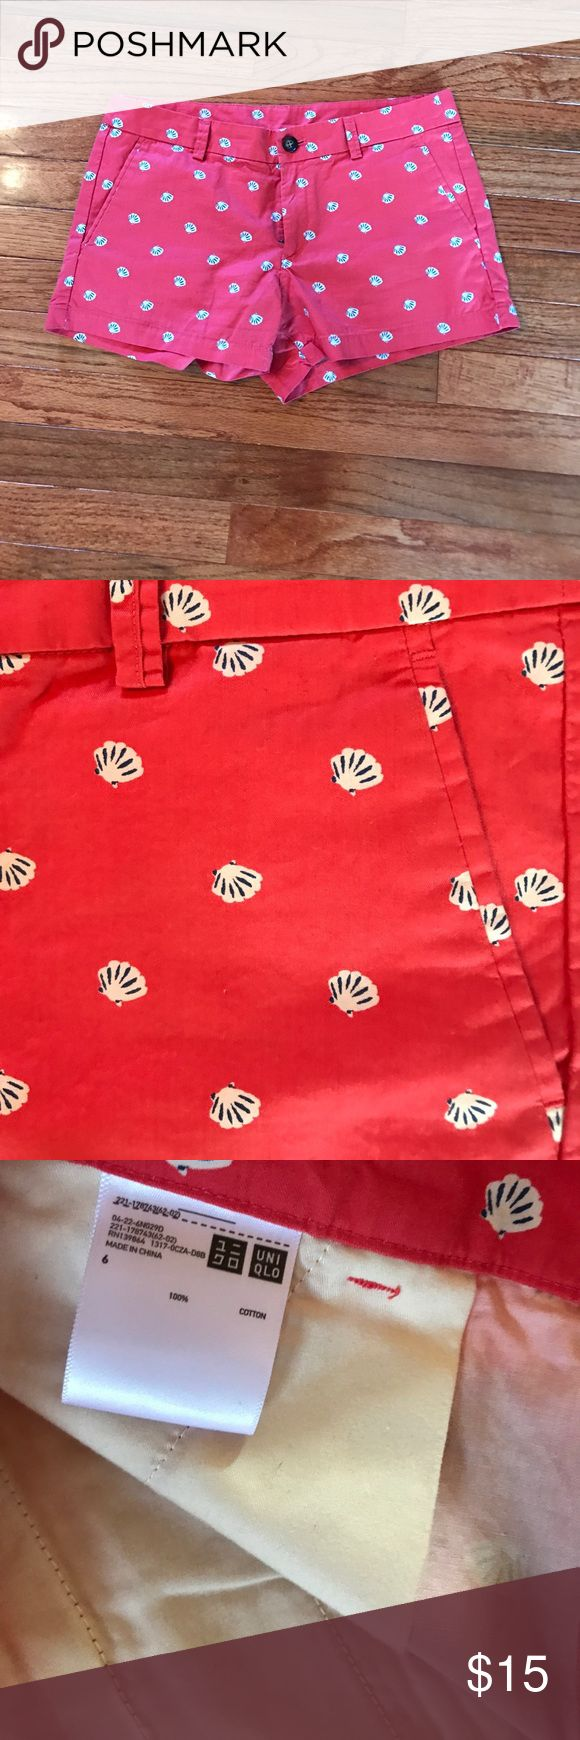 Final sale on Red shorts with white shells 100% cotton, never worn Uniqlo Shorts